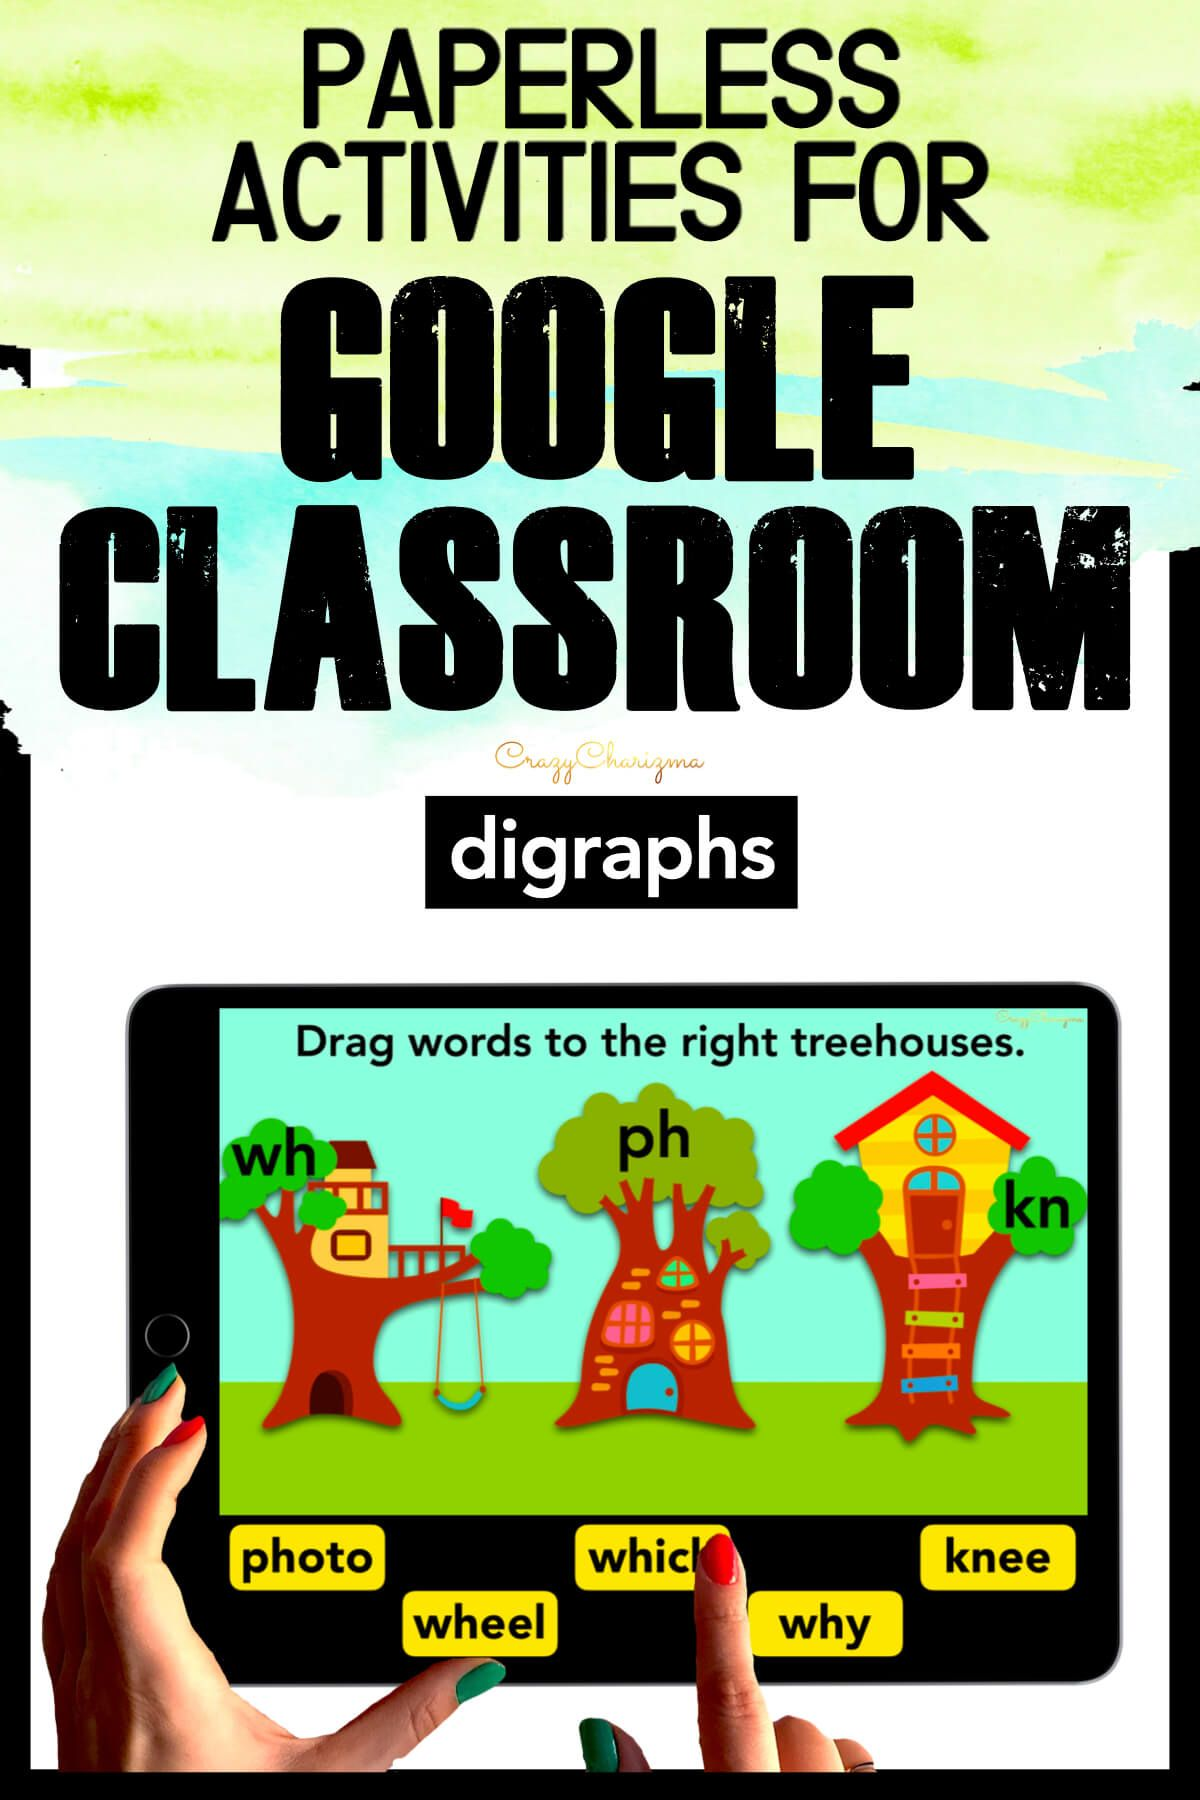 Need to practice beginning digraphs (CH, SH, TH, WH, PH, KN) and ending digraphs (CH, SH, TH) in a fun way? Check out these interactive slides for Google Classroom. Kids will drag words to the correct treehouses.